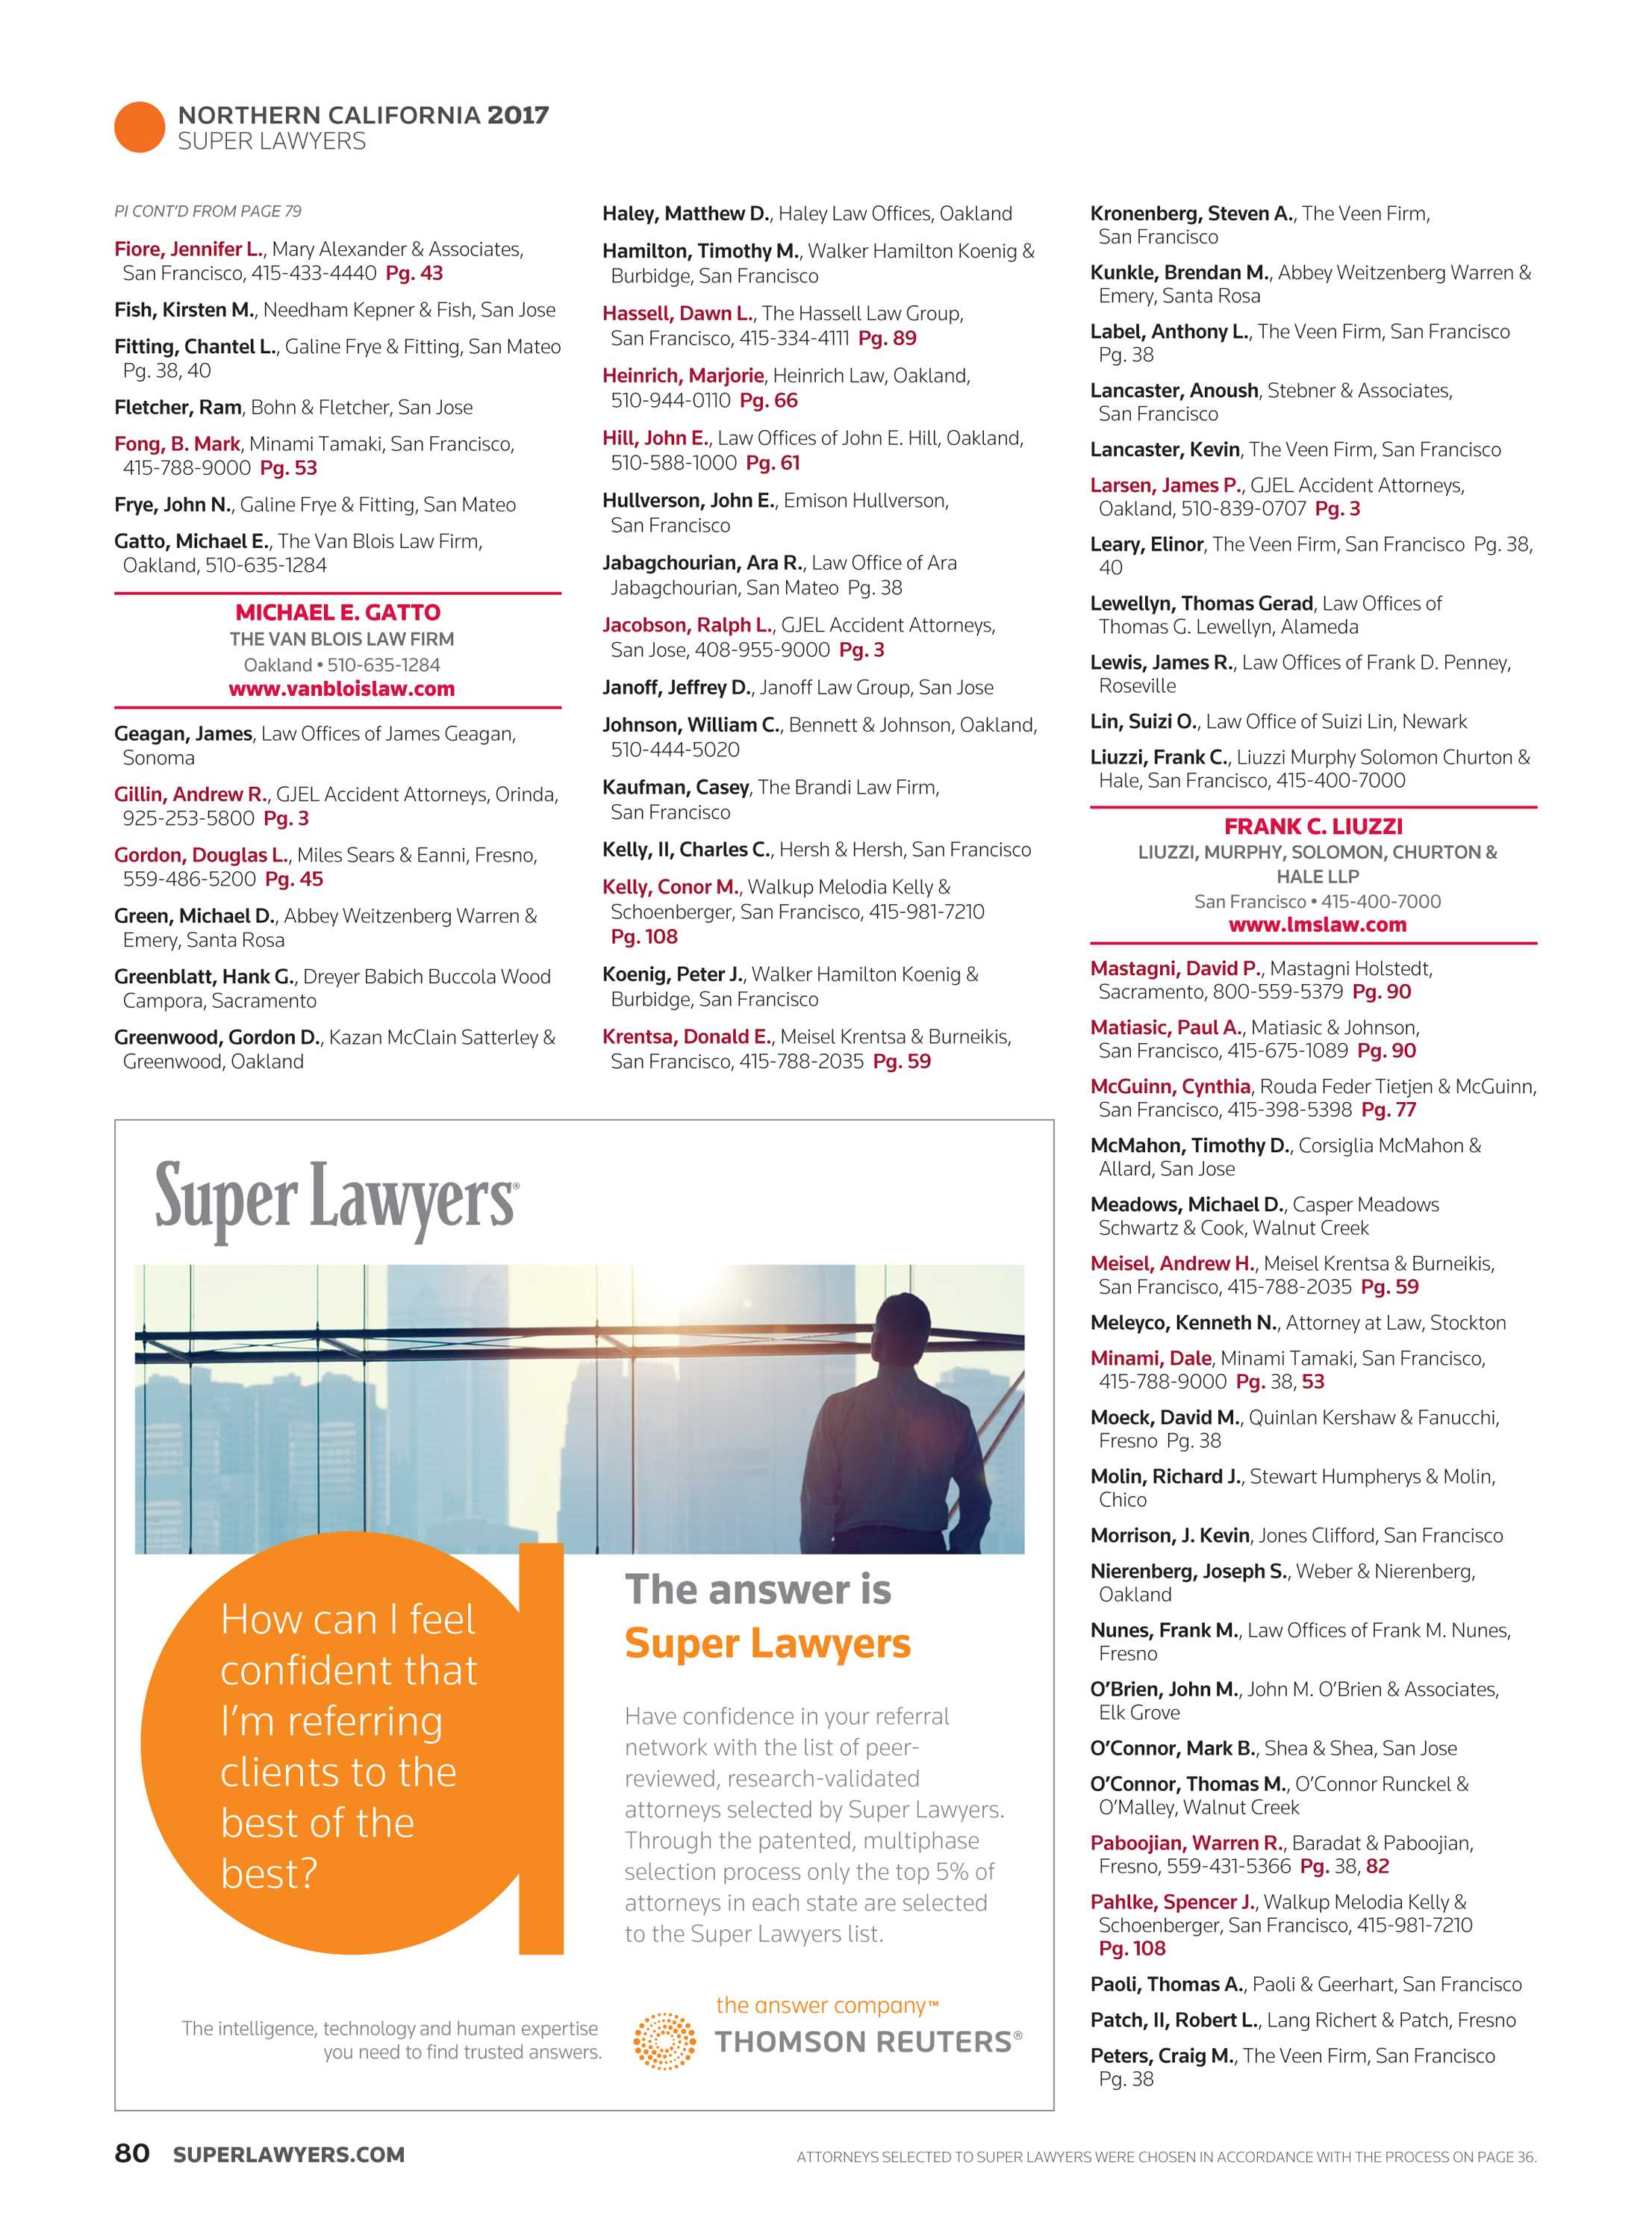 Super Lawyers - Northern California 2017 - page 80